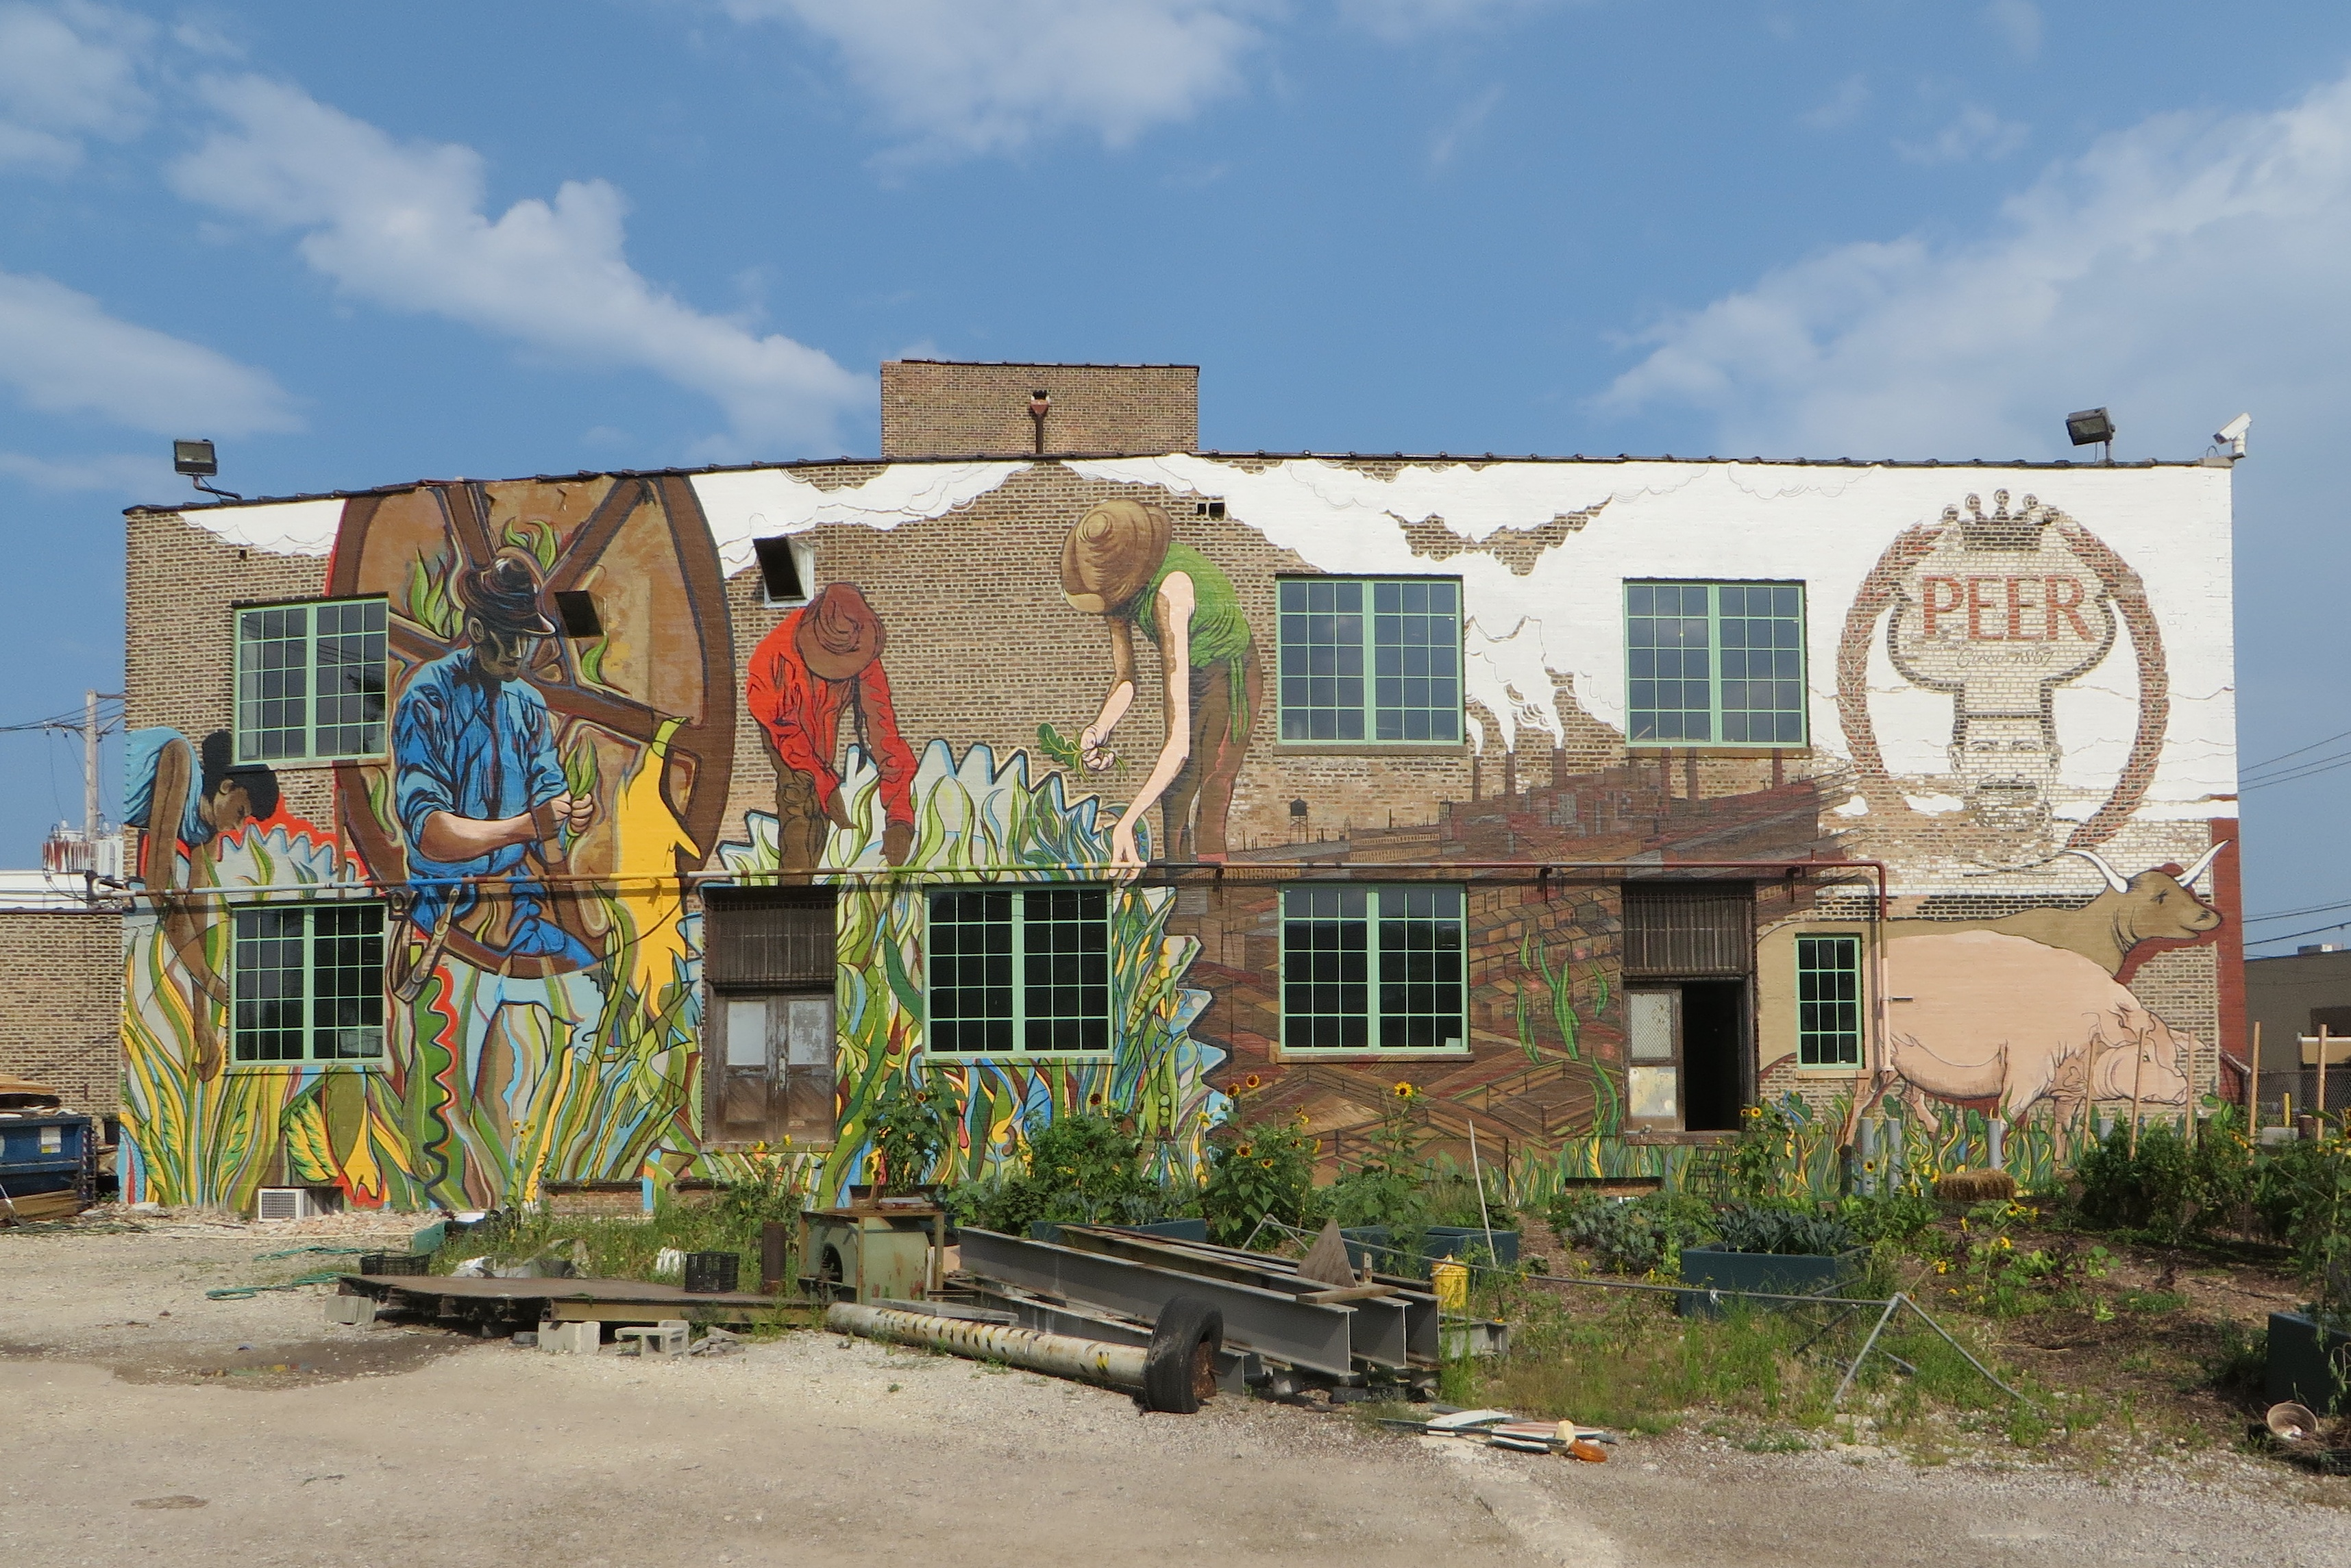 Joe Miller painted this mural in 2014 on a building at 1400 W. 46th St. that anchors an urban farm and food incubator called The Plant, an old meatpacking building back when the Chicago's stockyards were still around.